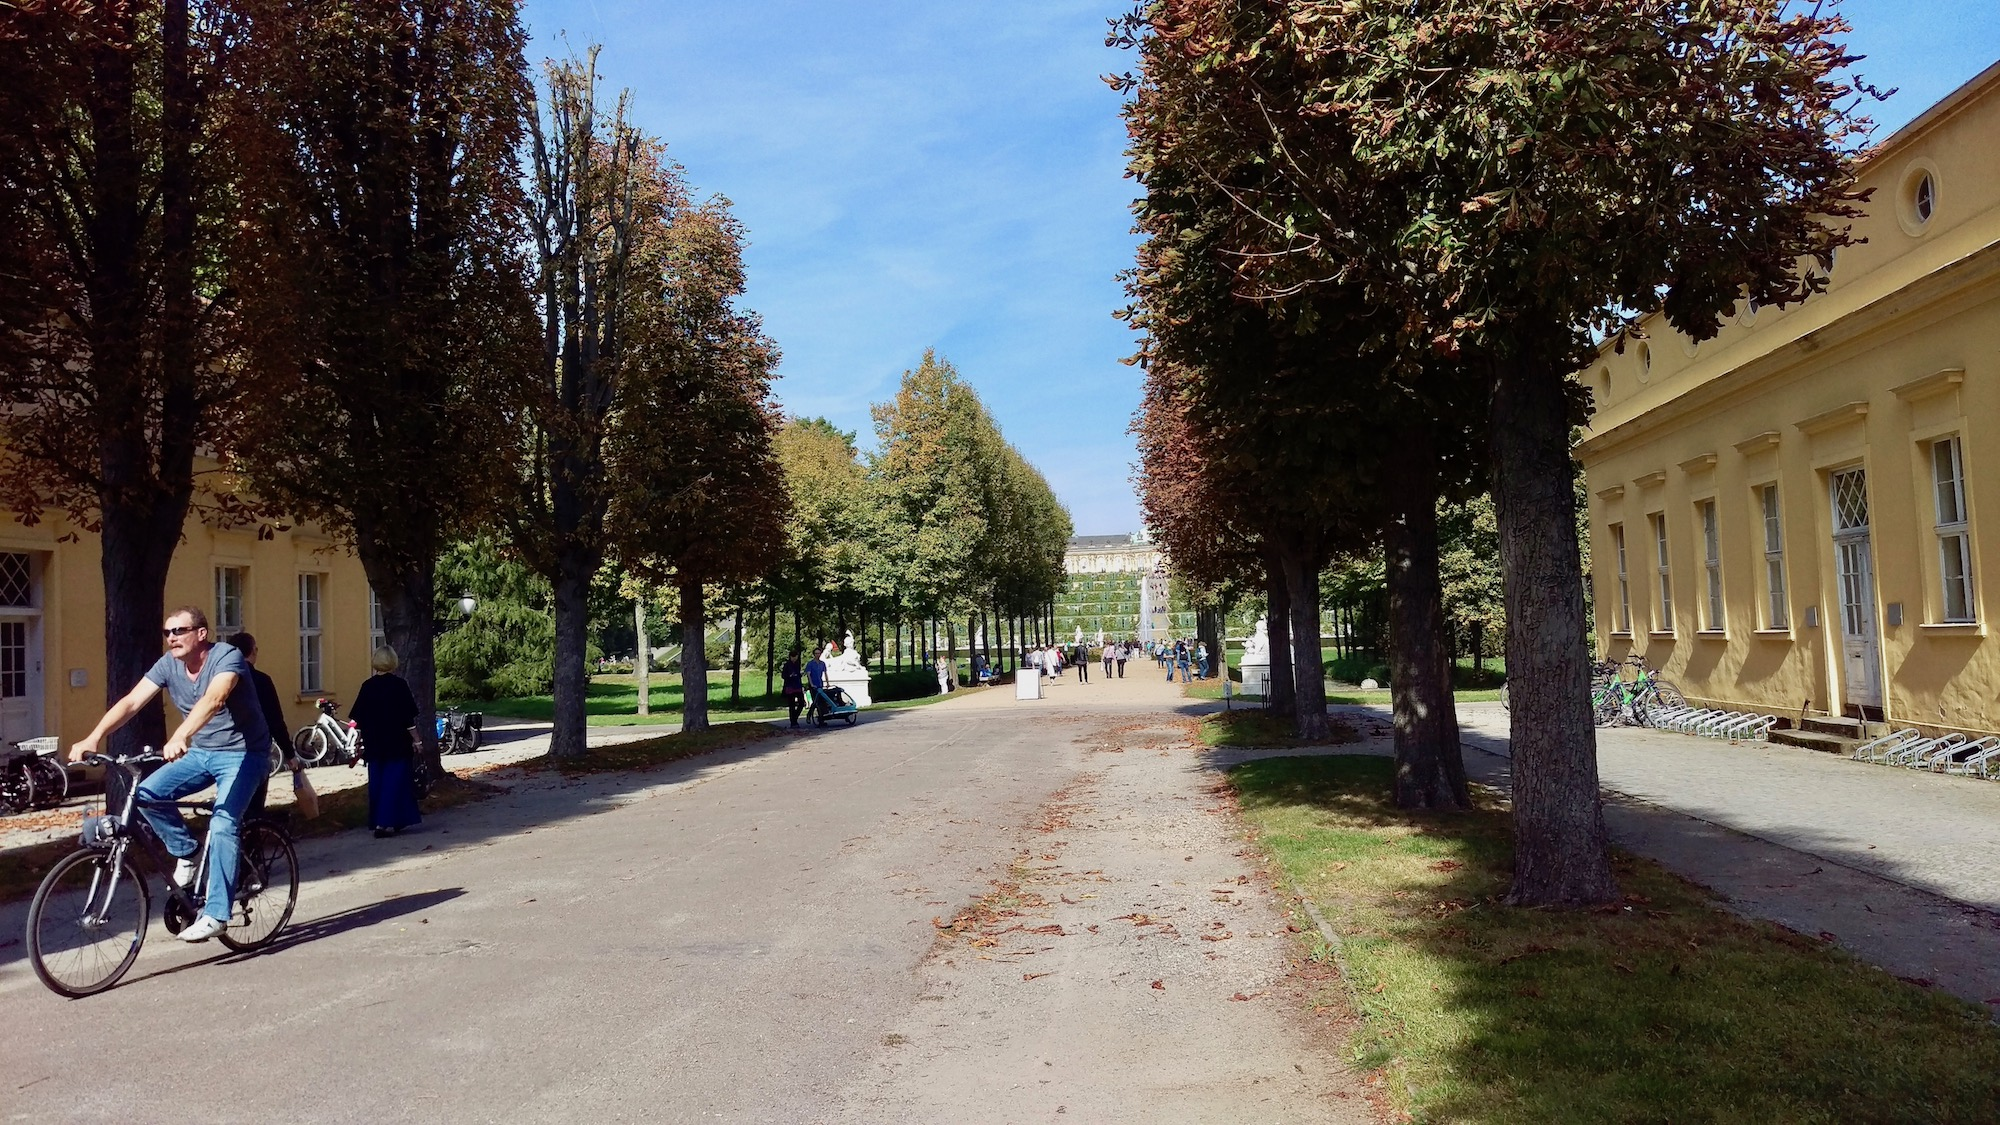 The alley that connects withSanssouci palace.